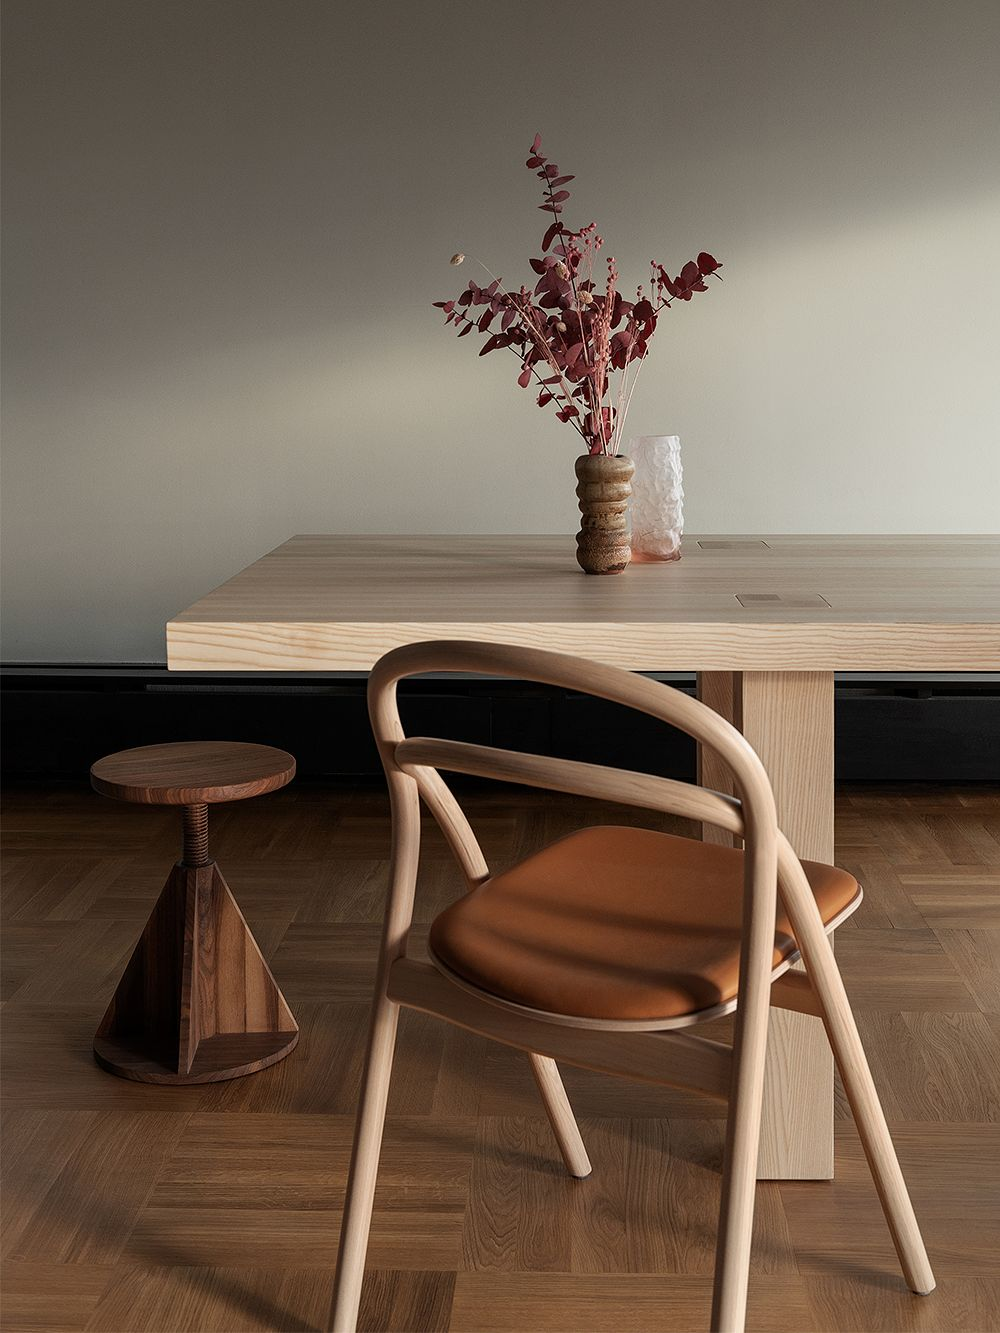 Hem's Udon chair in dining room decor.